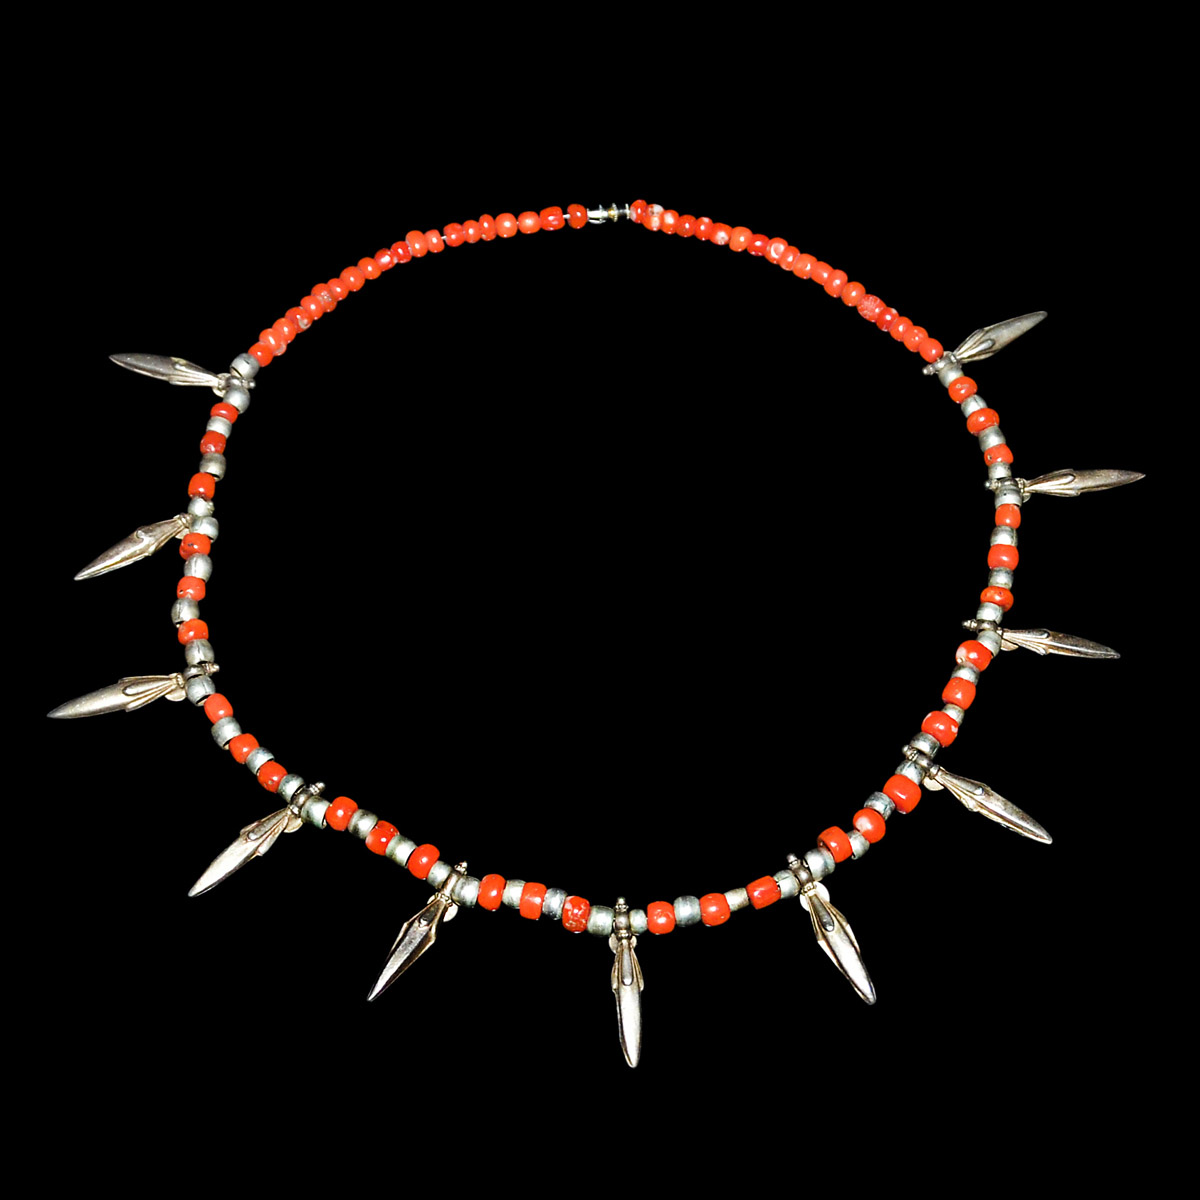 Lot 19 - 天然紅珊瑚方柱珠銀花蕾項鏈掛飾 Naturalistic Coral Beads Necklace with Silver Beads and Ritual Decorations Diameter: